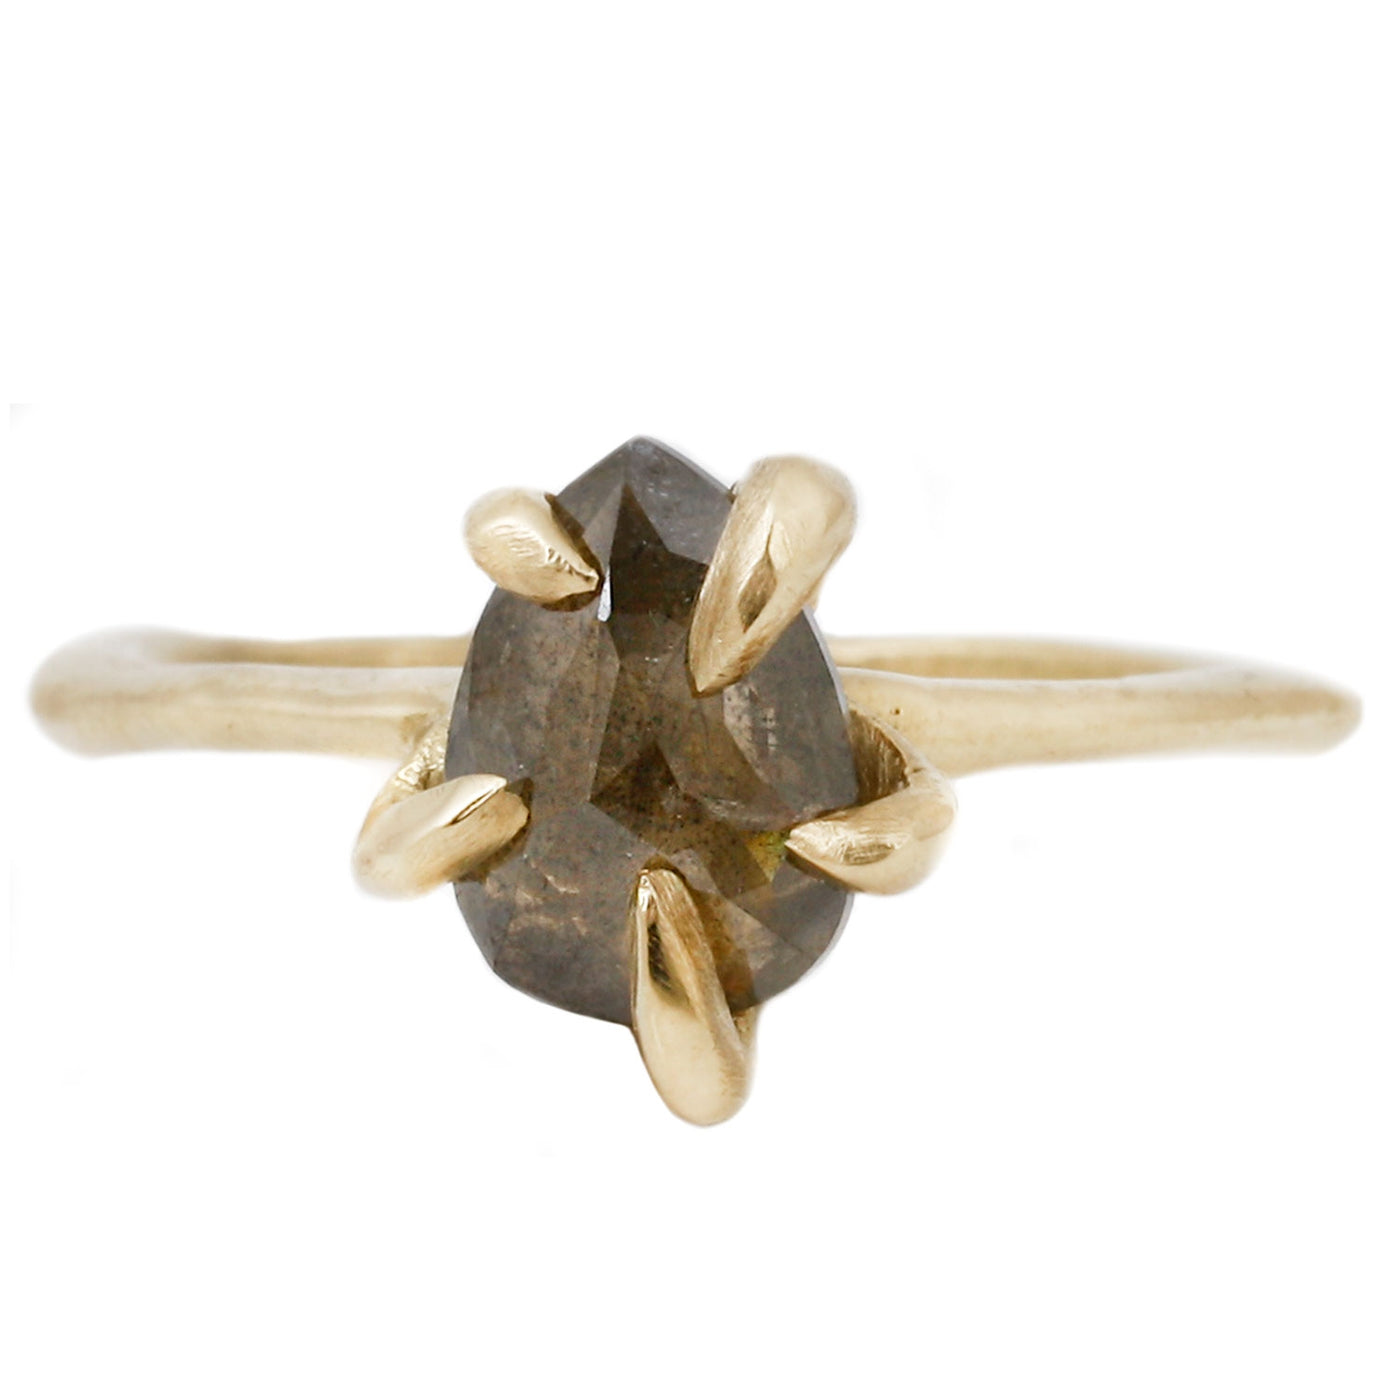 Lauren Wolf Jewelry Contemporary Claw Ring Diamond Solitaire in Yellow Gold